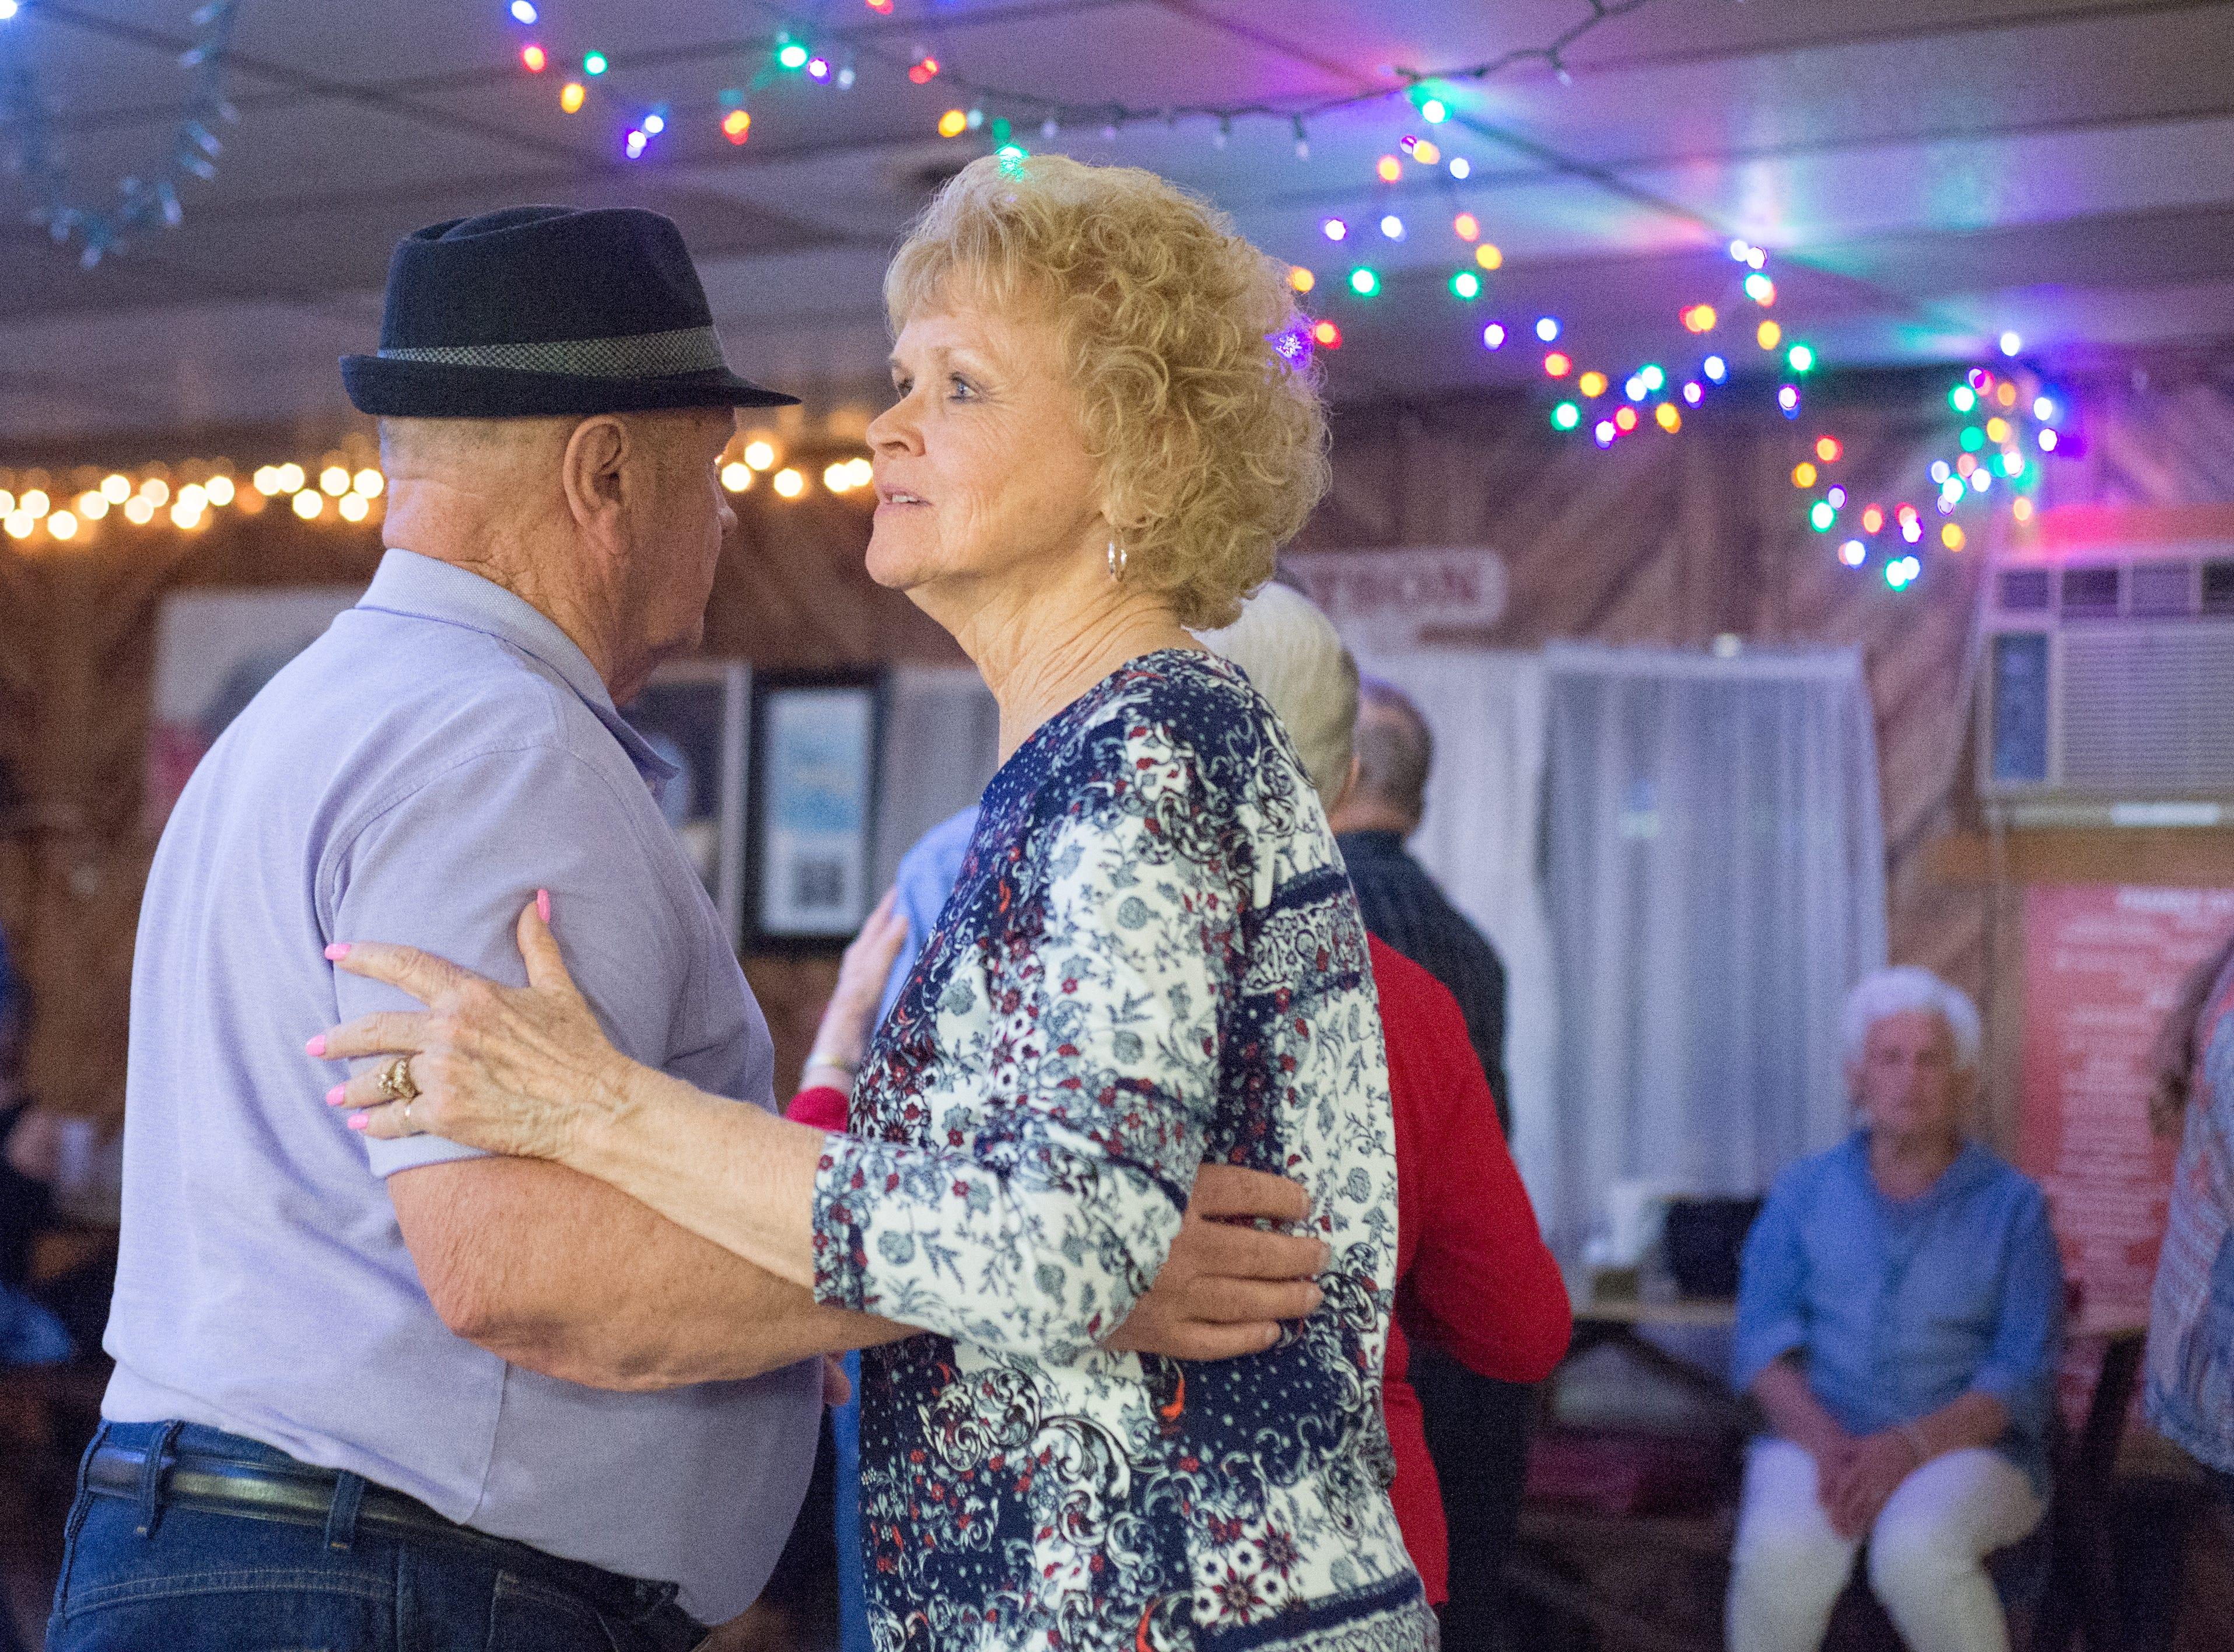 Peggy Christian (right) enjoys to dance at Long Hollow Jamboree in Goodlettsville on Saturday, April 7.